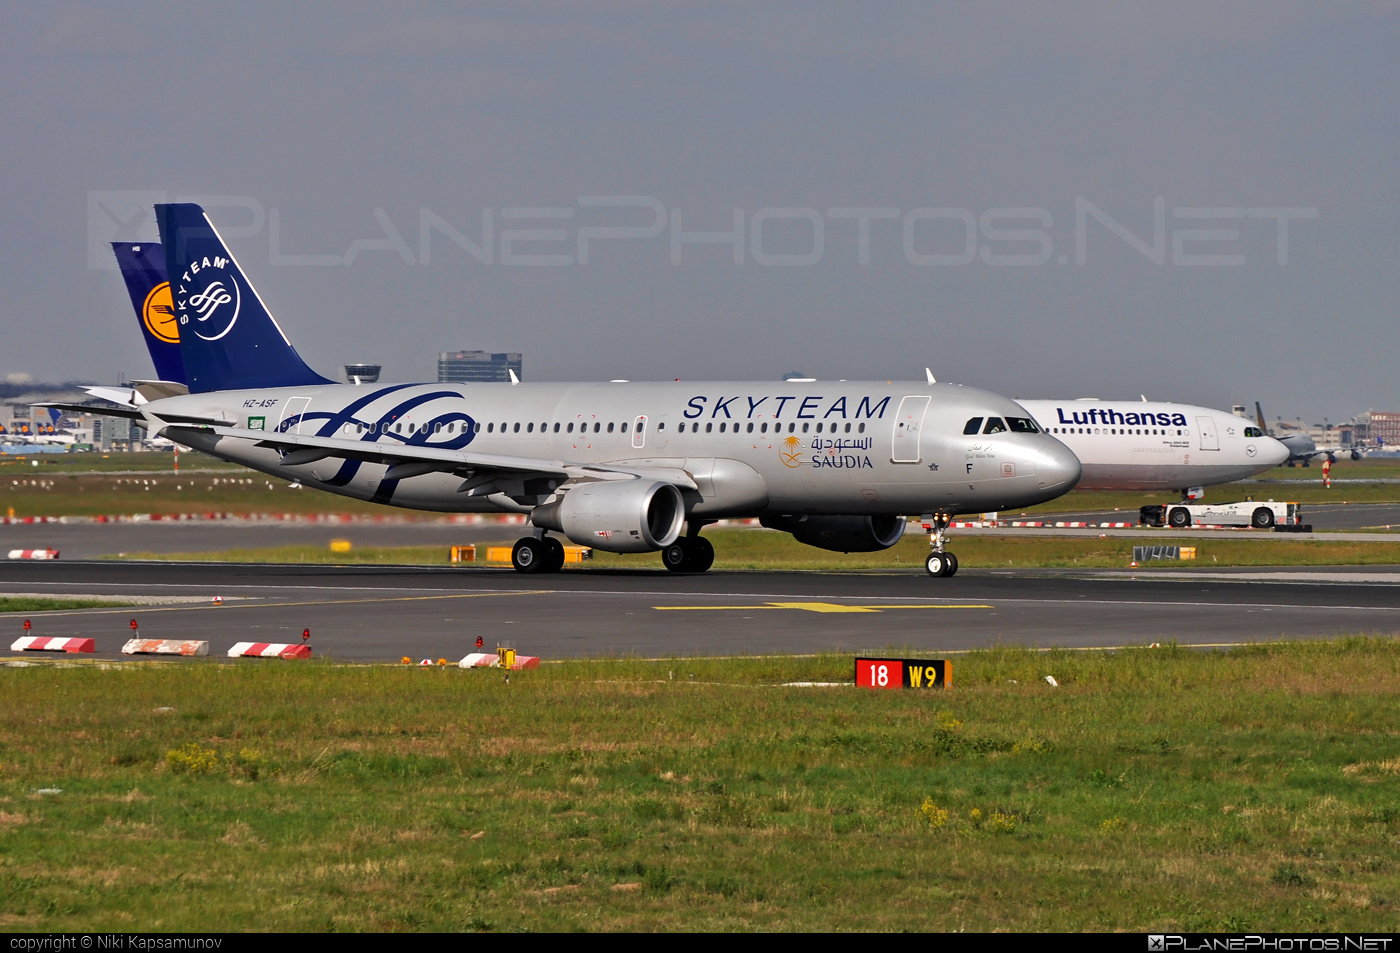 Airbus A320-214 - HZ-ASF operated by Saudi Arabian Airlines #a320 #a320family #airbus #airbus320 #skyteam